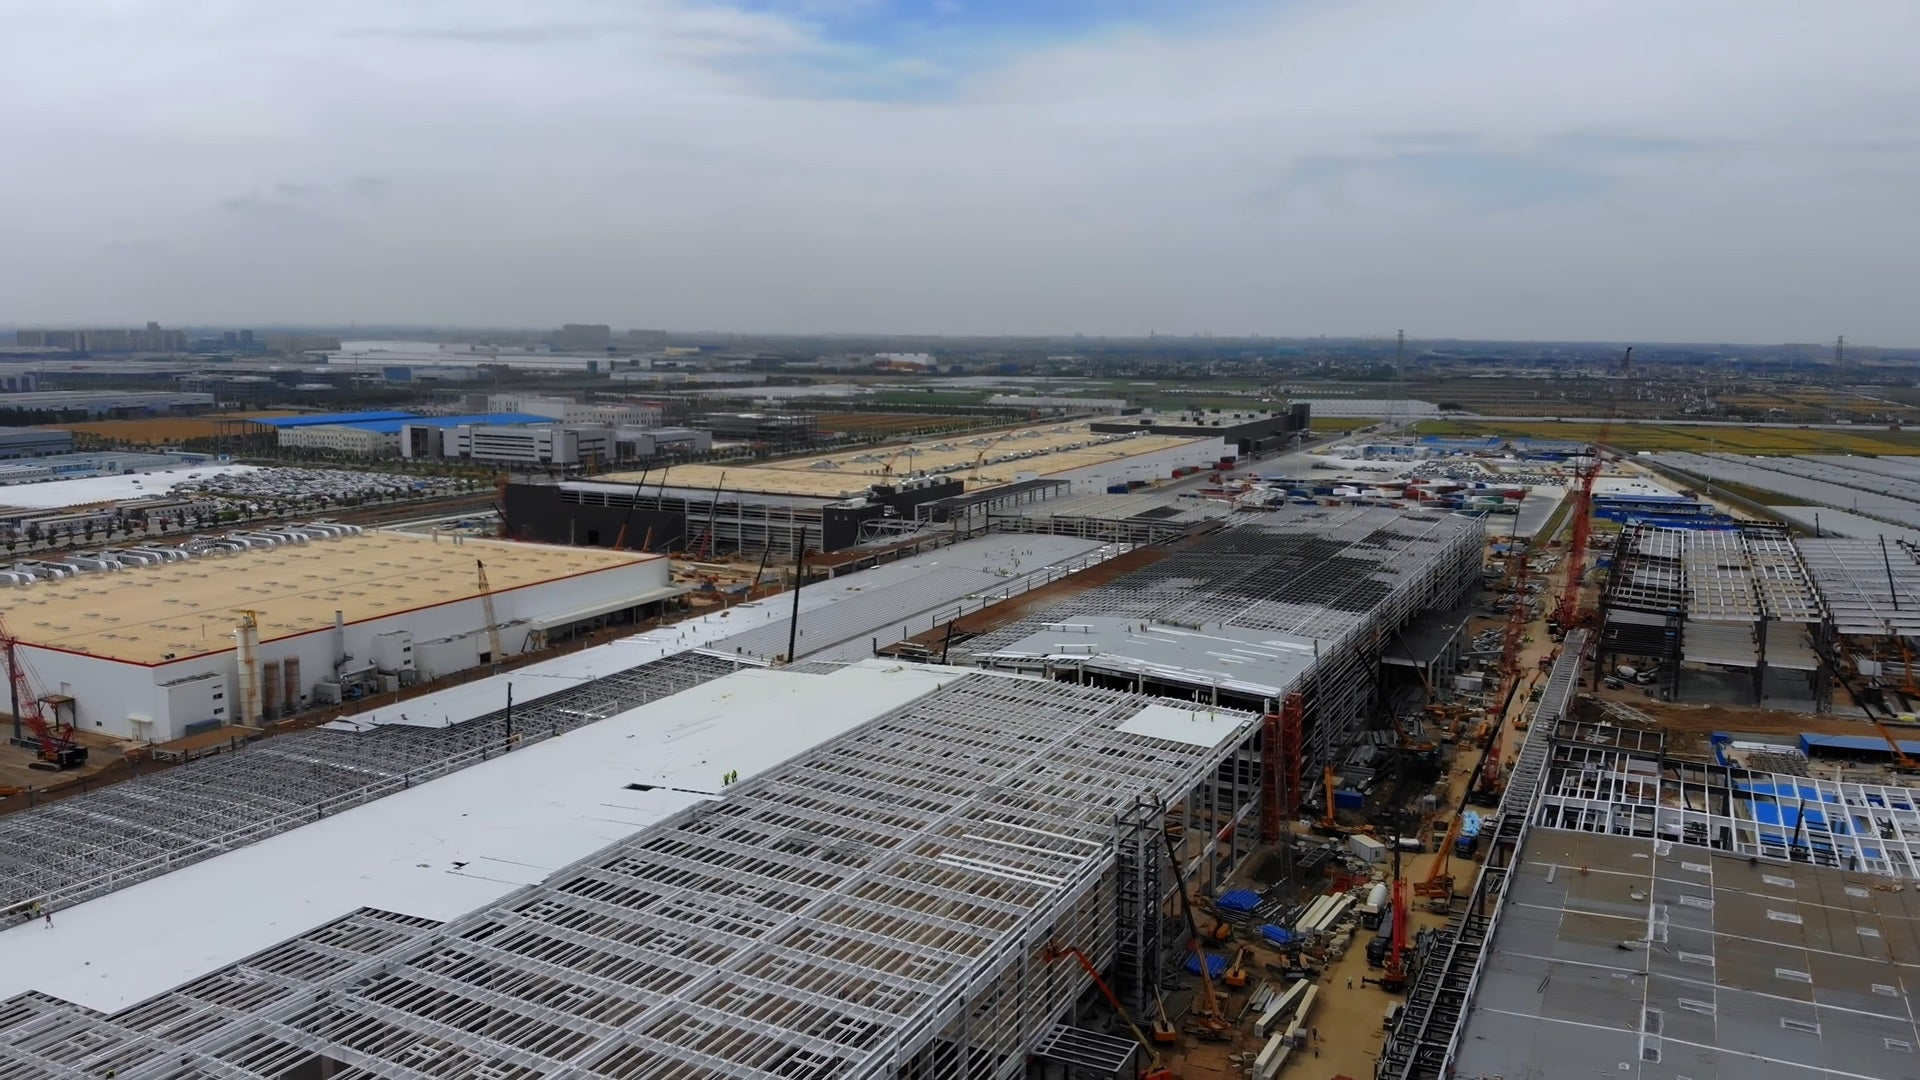 Tesla Giga Shanghai About To Finish Phase 2 Construction, Chinese-Made Model Y Production Could Happen Soon